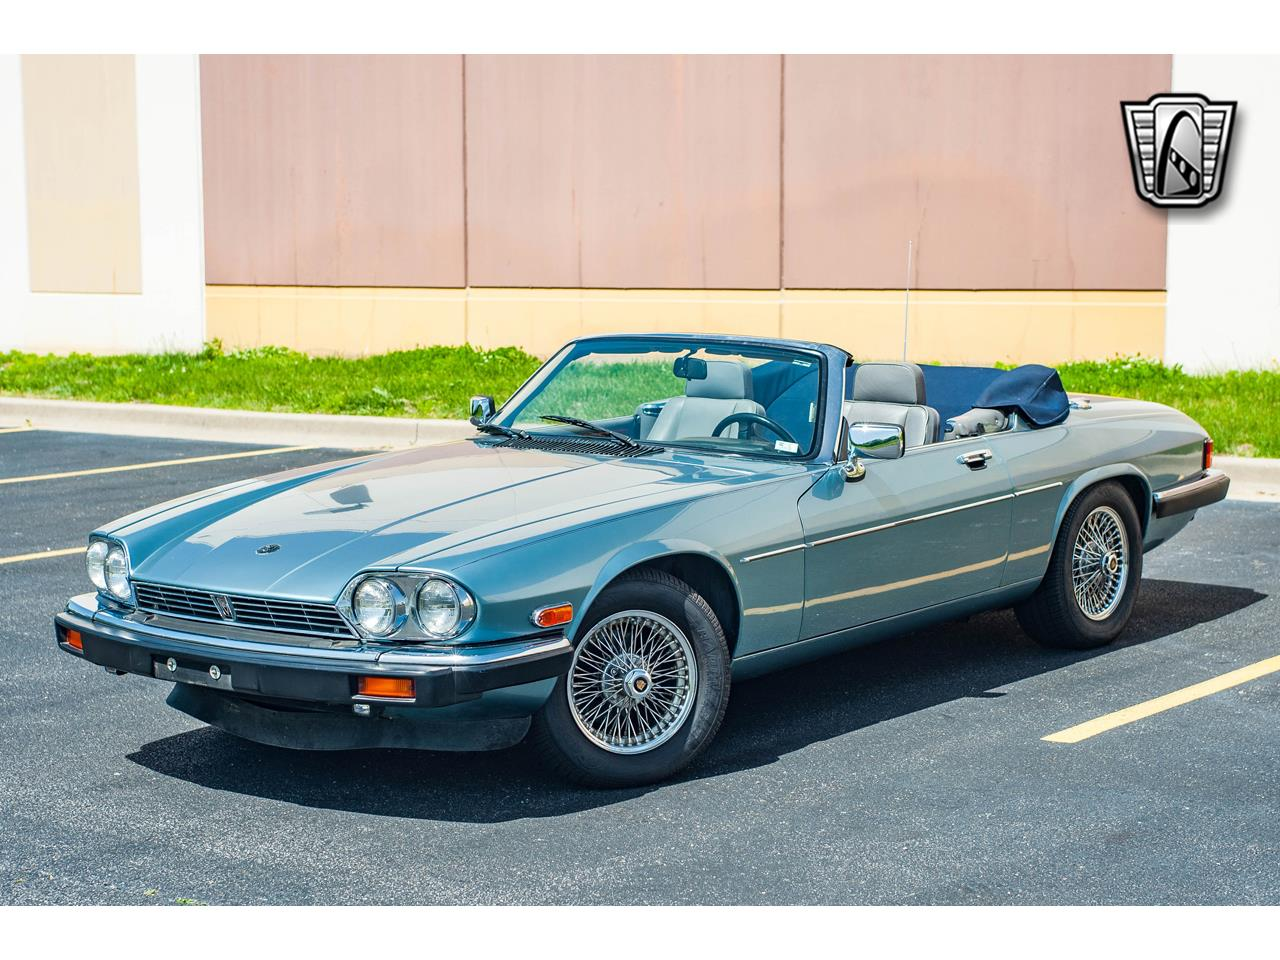 Large Picture of '90 XJS located in O'Fallon Illinois - $15,500.00 Offered by Gateway Classic Cars - St. Louis - QB9E